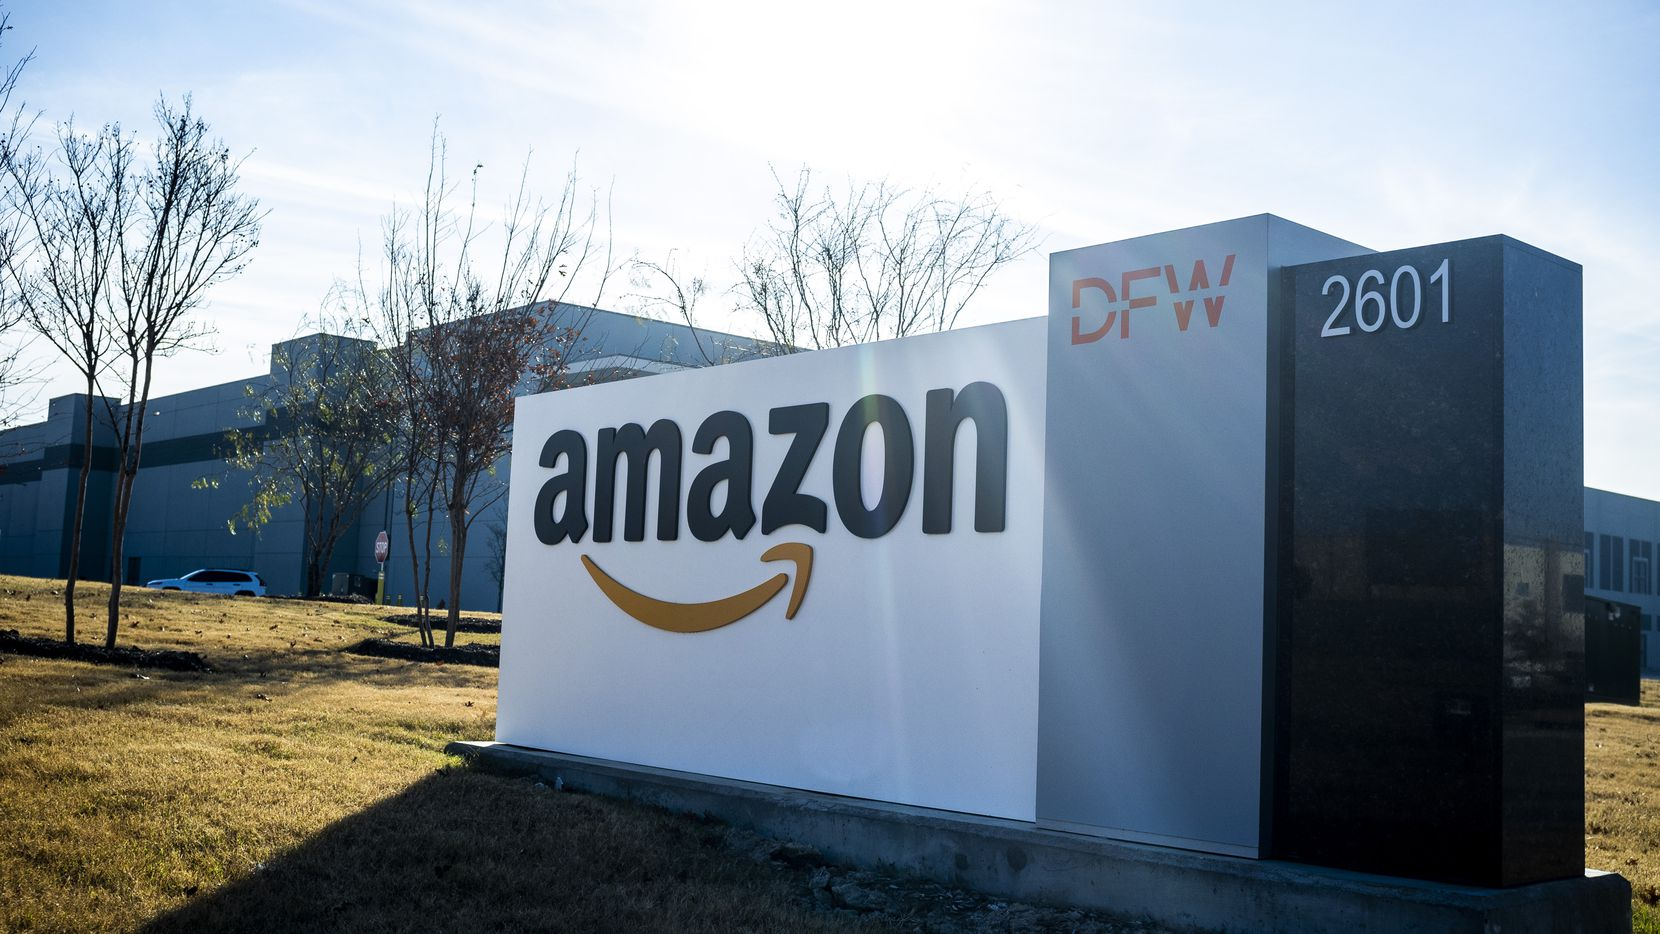 An Amazon fulfillment center in Grapevine, Texas on Wednesday, December 5, 2018. The tech giant is planning a new fulfillment center in Richardson.